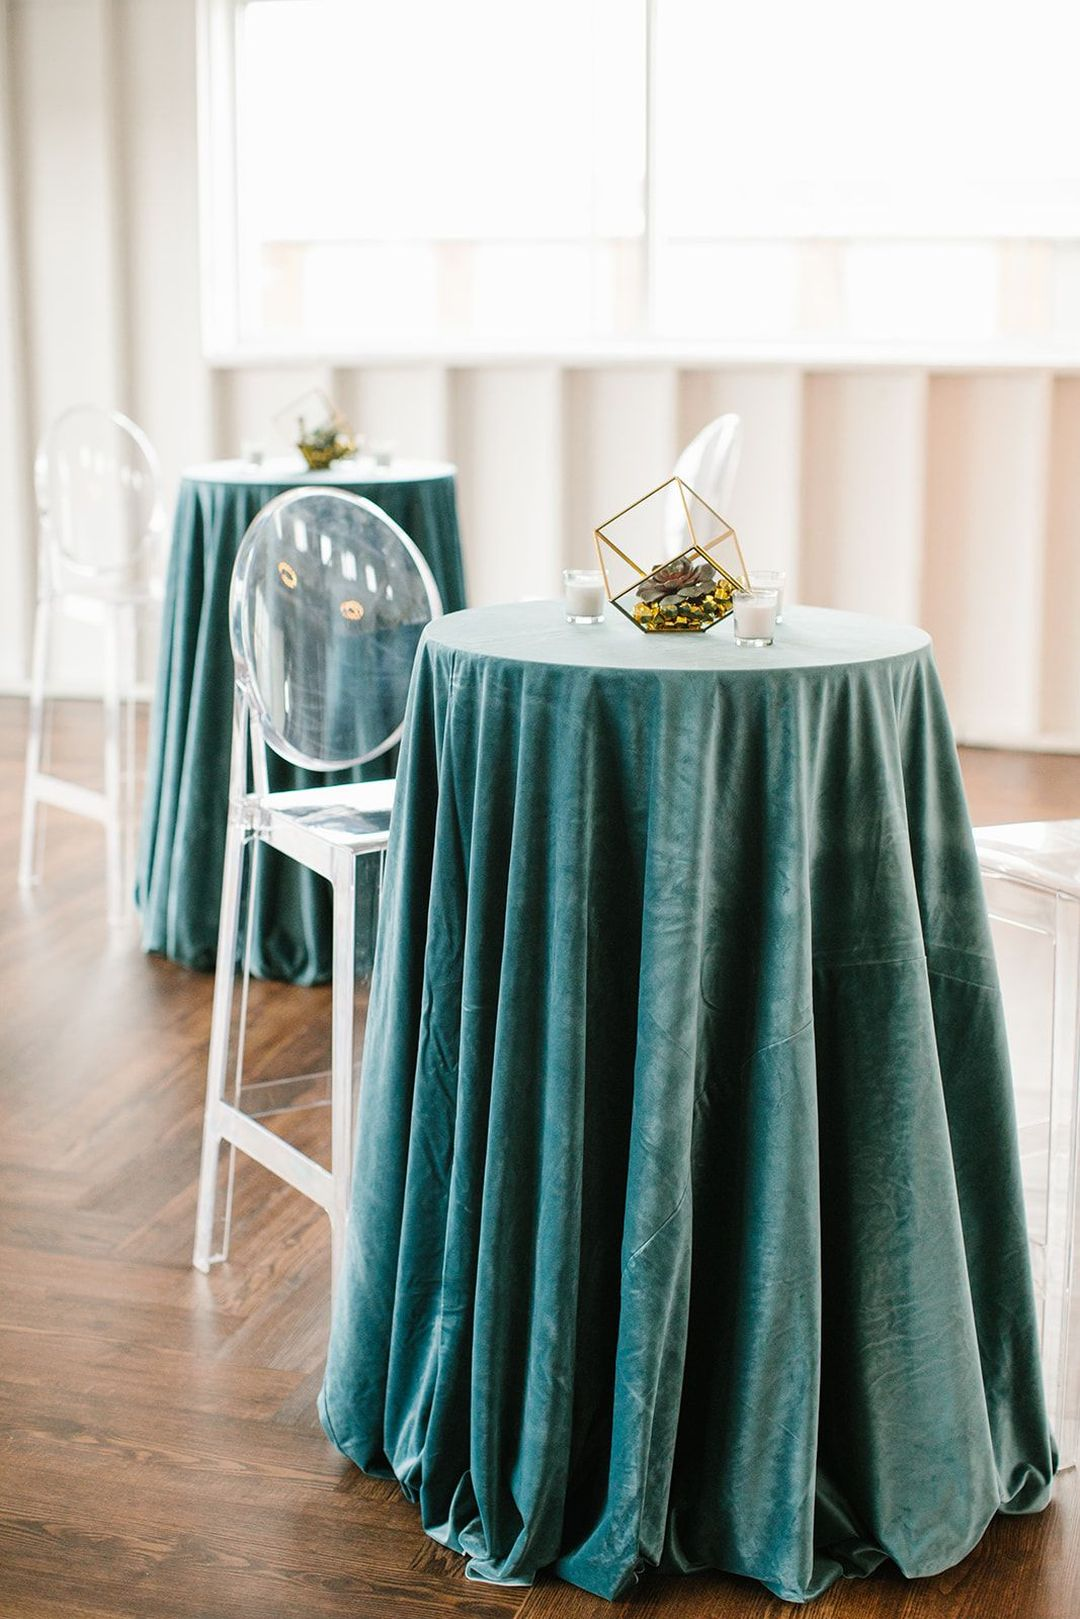 bistro table with blue linens, acrylic ghost barstool chairs